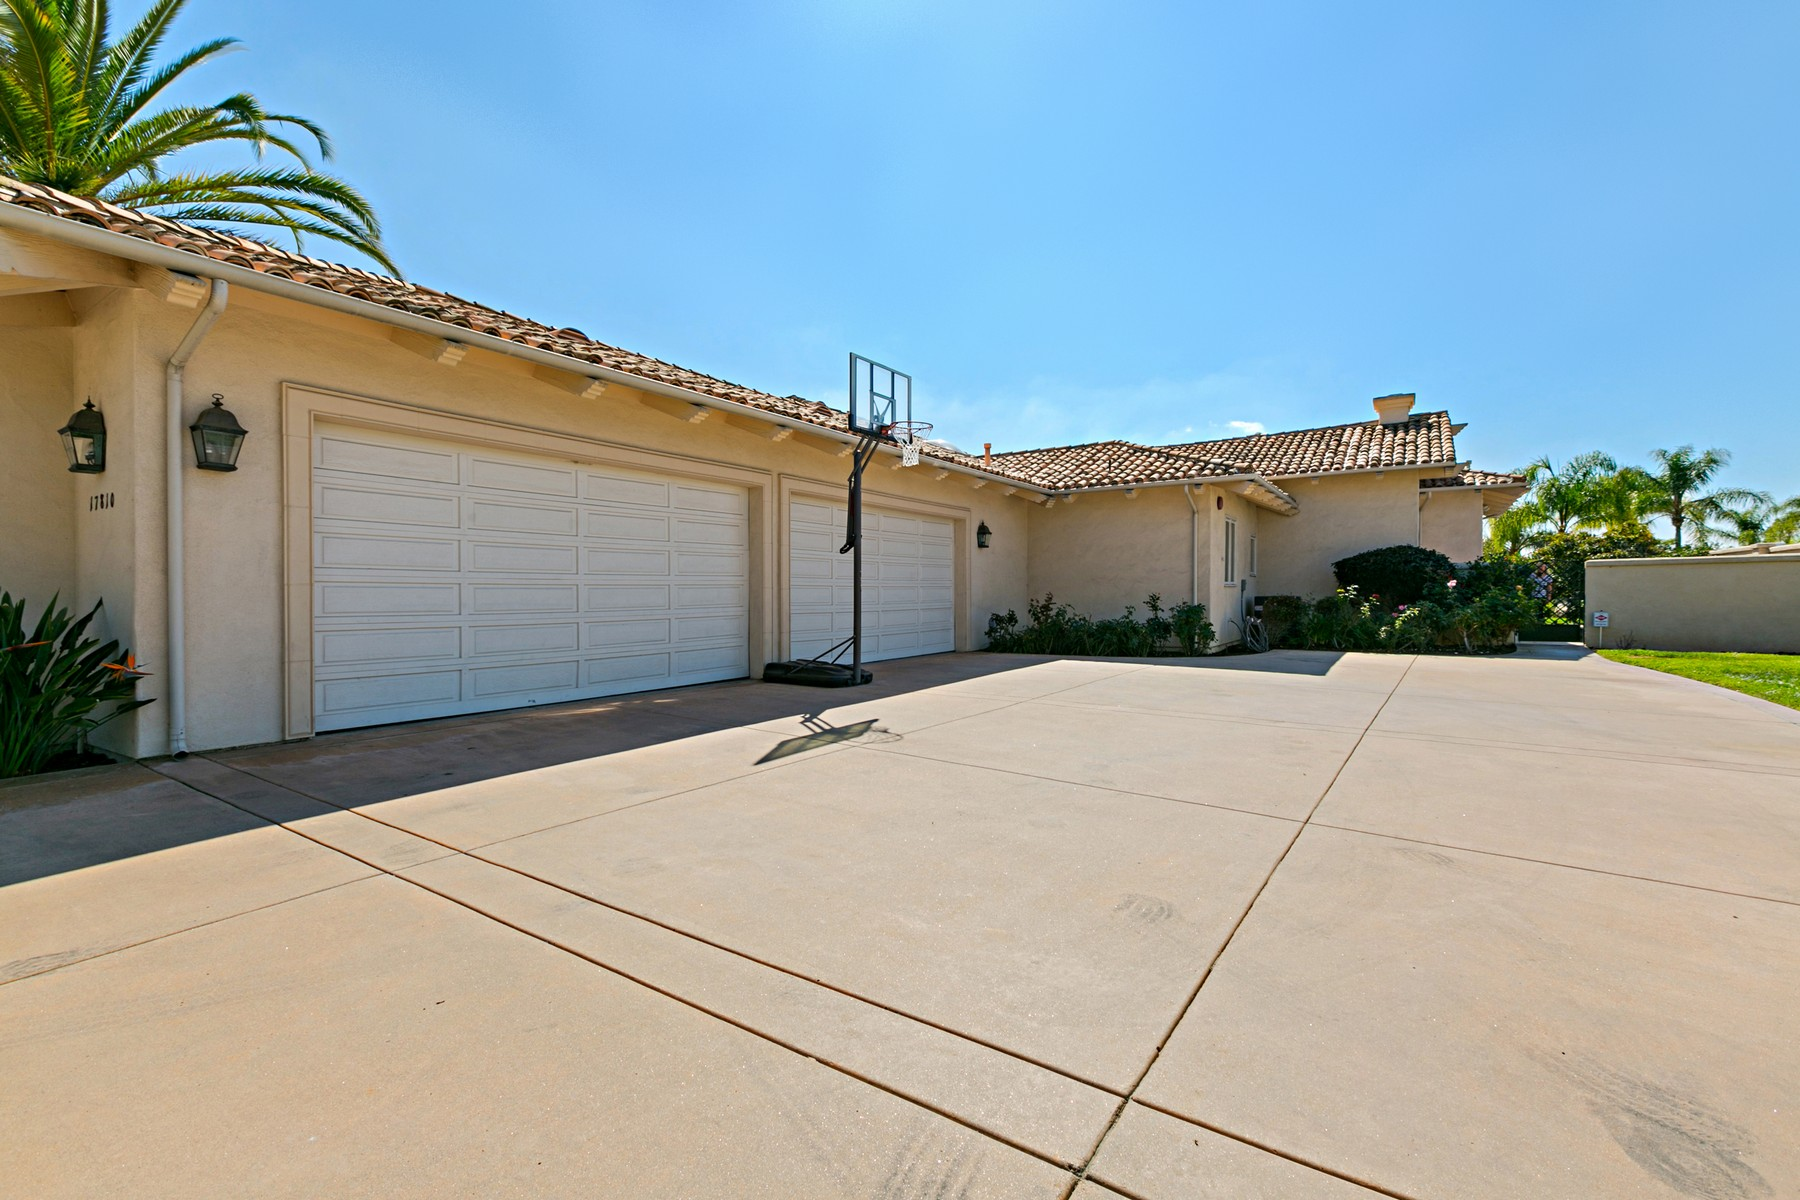 Additional photo for property listing at 17810 Old Winemaster Way  Poway, California 92064 Estados Unidos